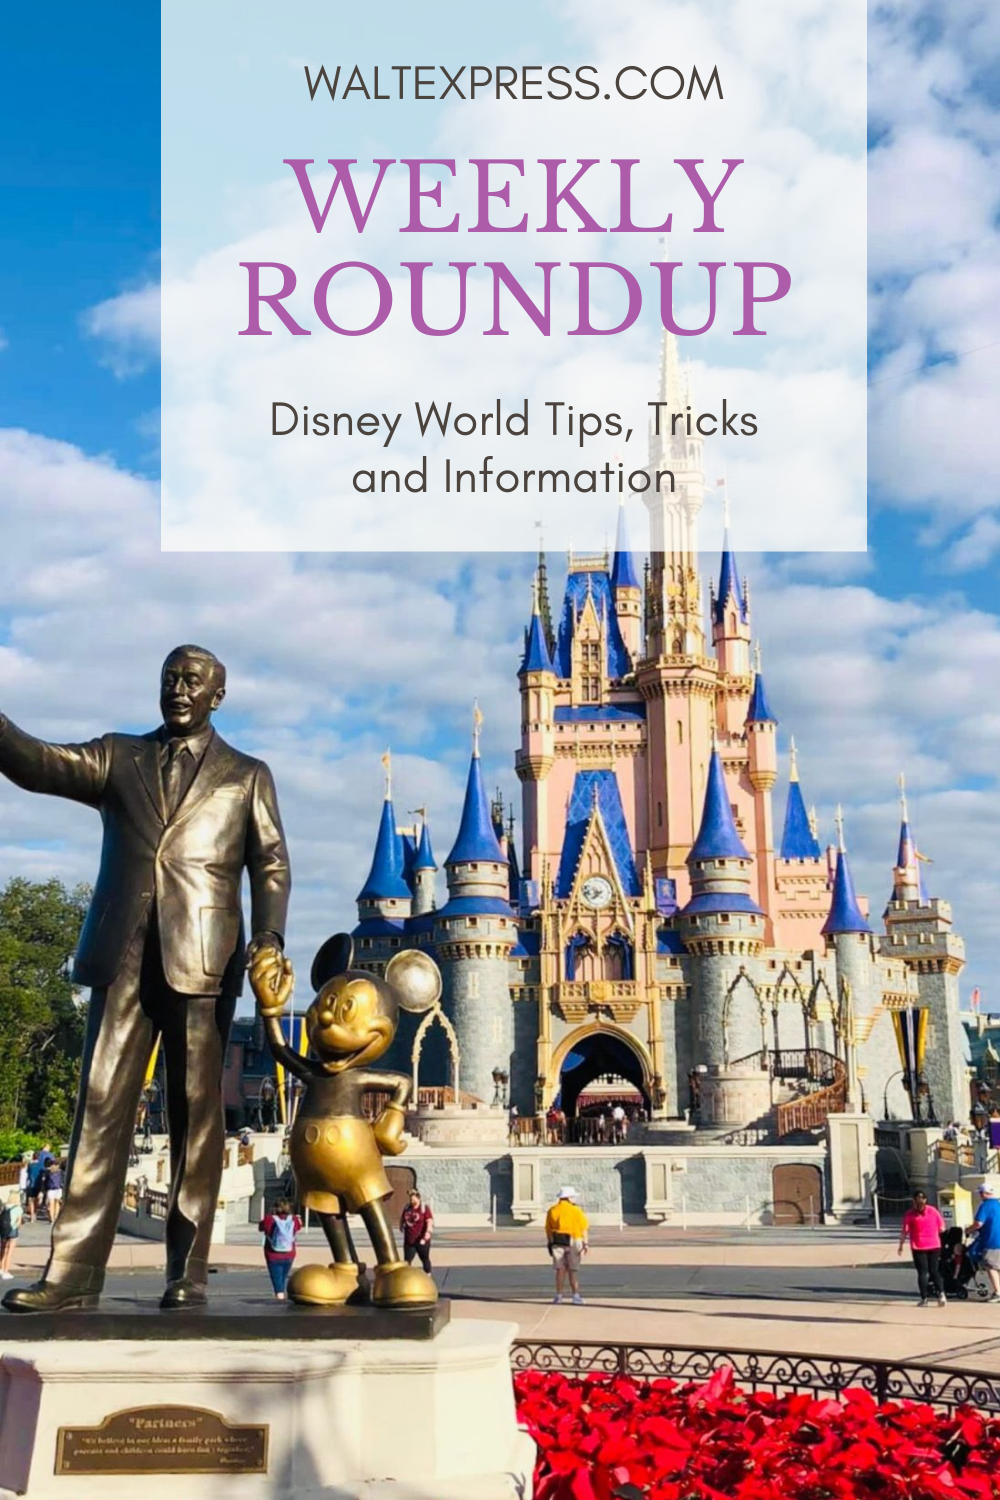 Weekly Roundup: Disney World Tips, Tricks and Information